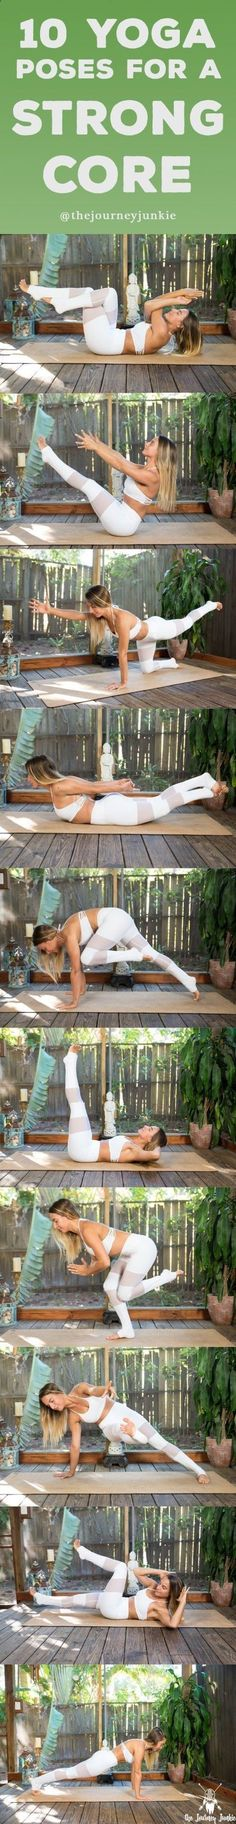 Easy Yoga Workout - 10 Poses for a Strong Powerful Core - Pin now, work on your core strength now! Get your sexiest body ever without,crunches,cardio,or ever setting foot in a gym